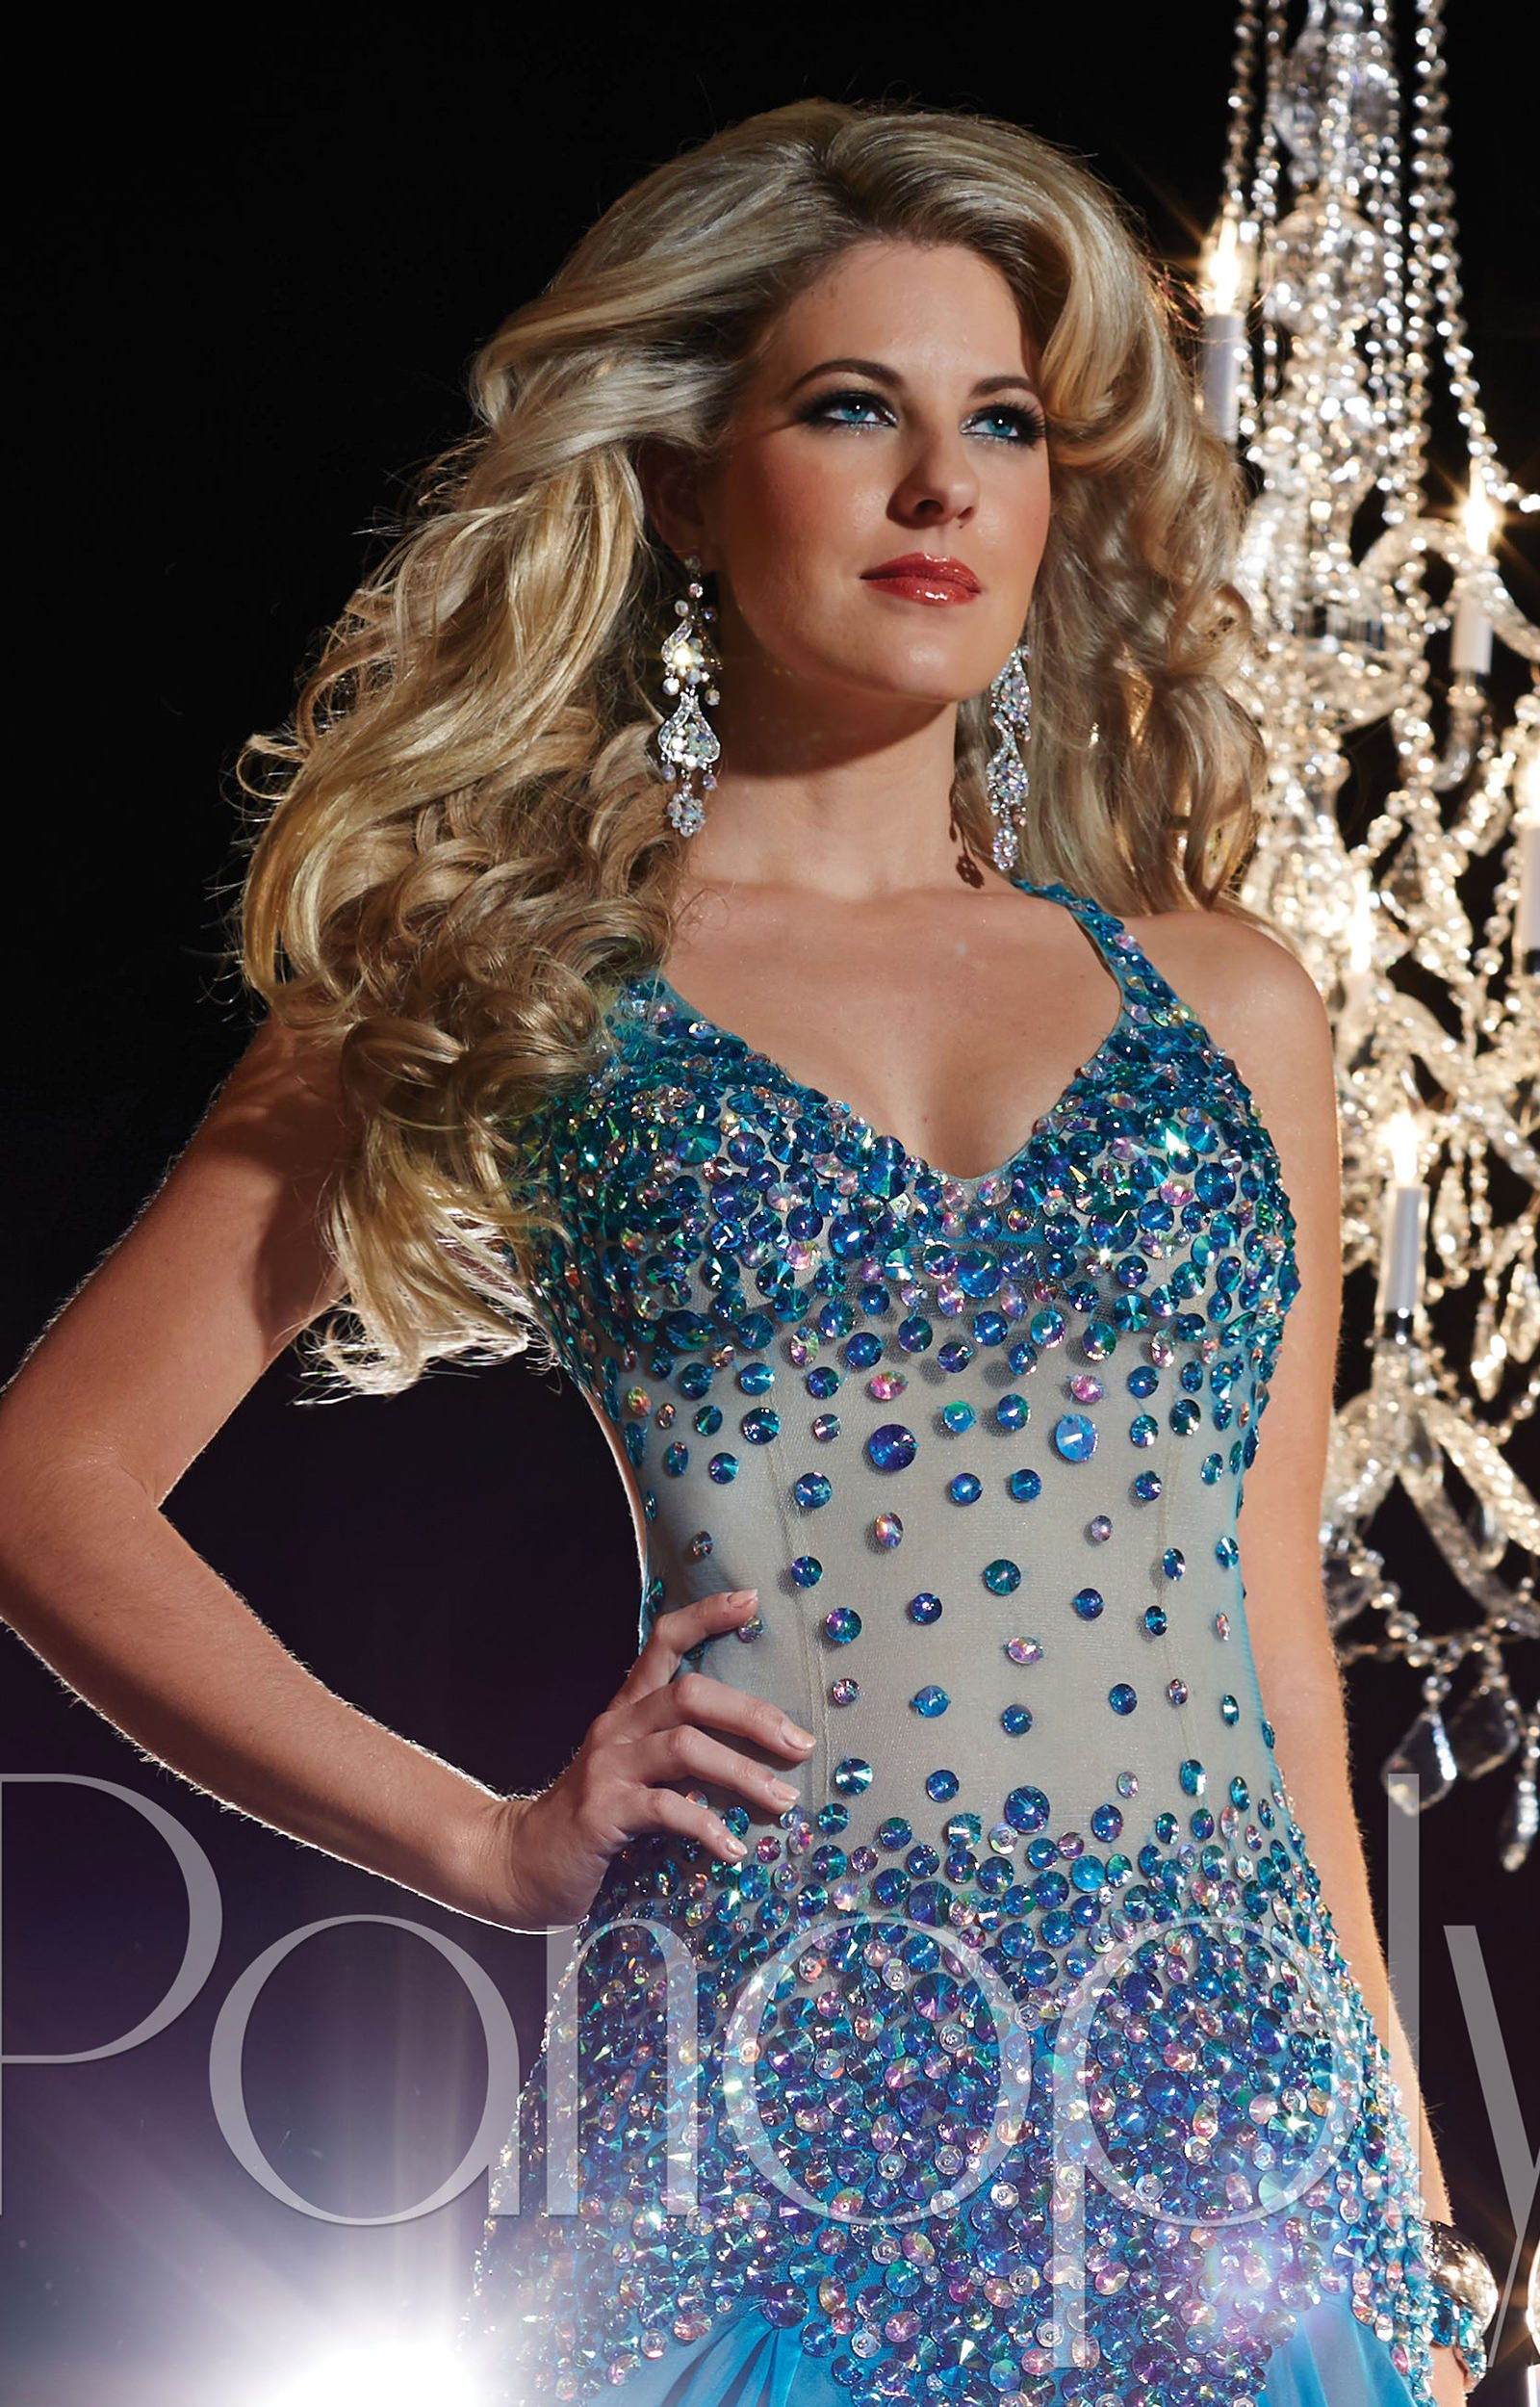 Panoply 14615 - The Daring Diva Gown Prom Dress